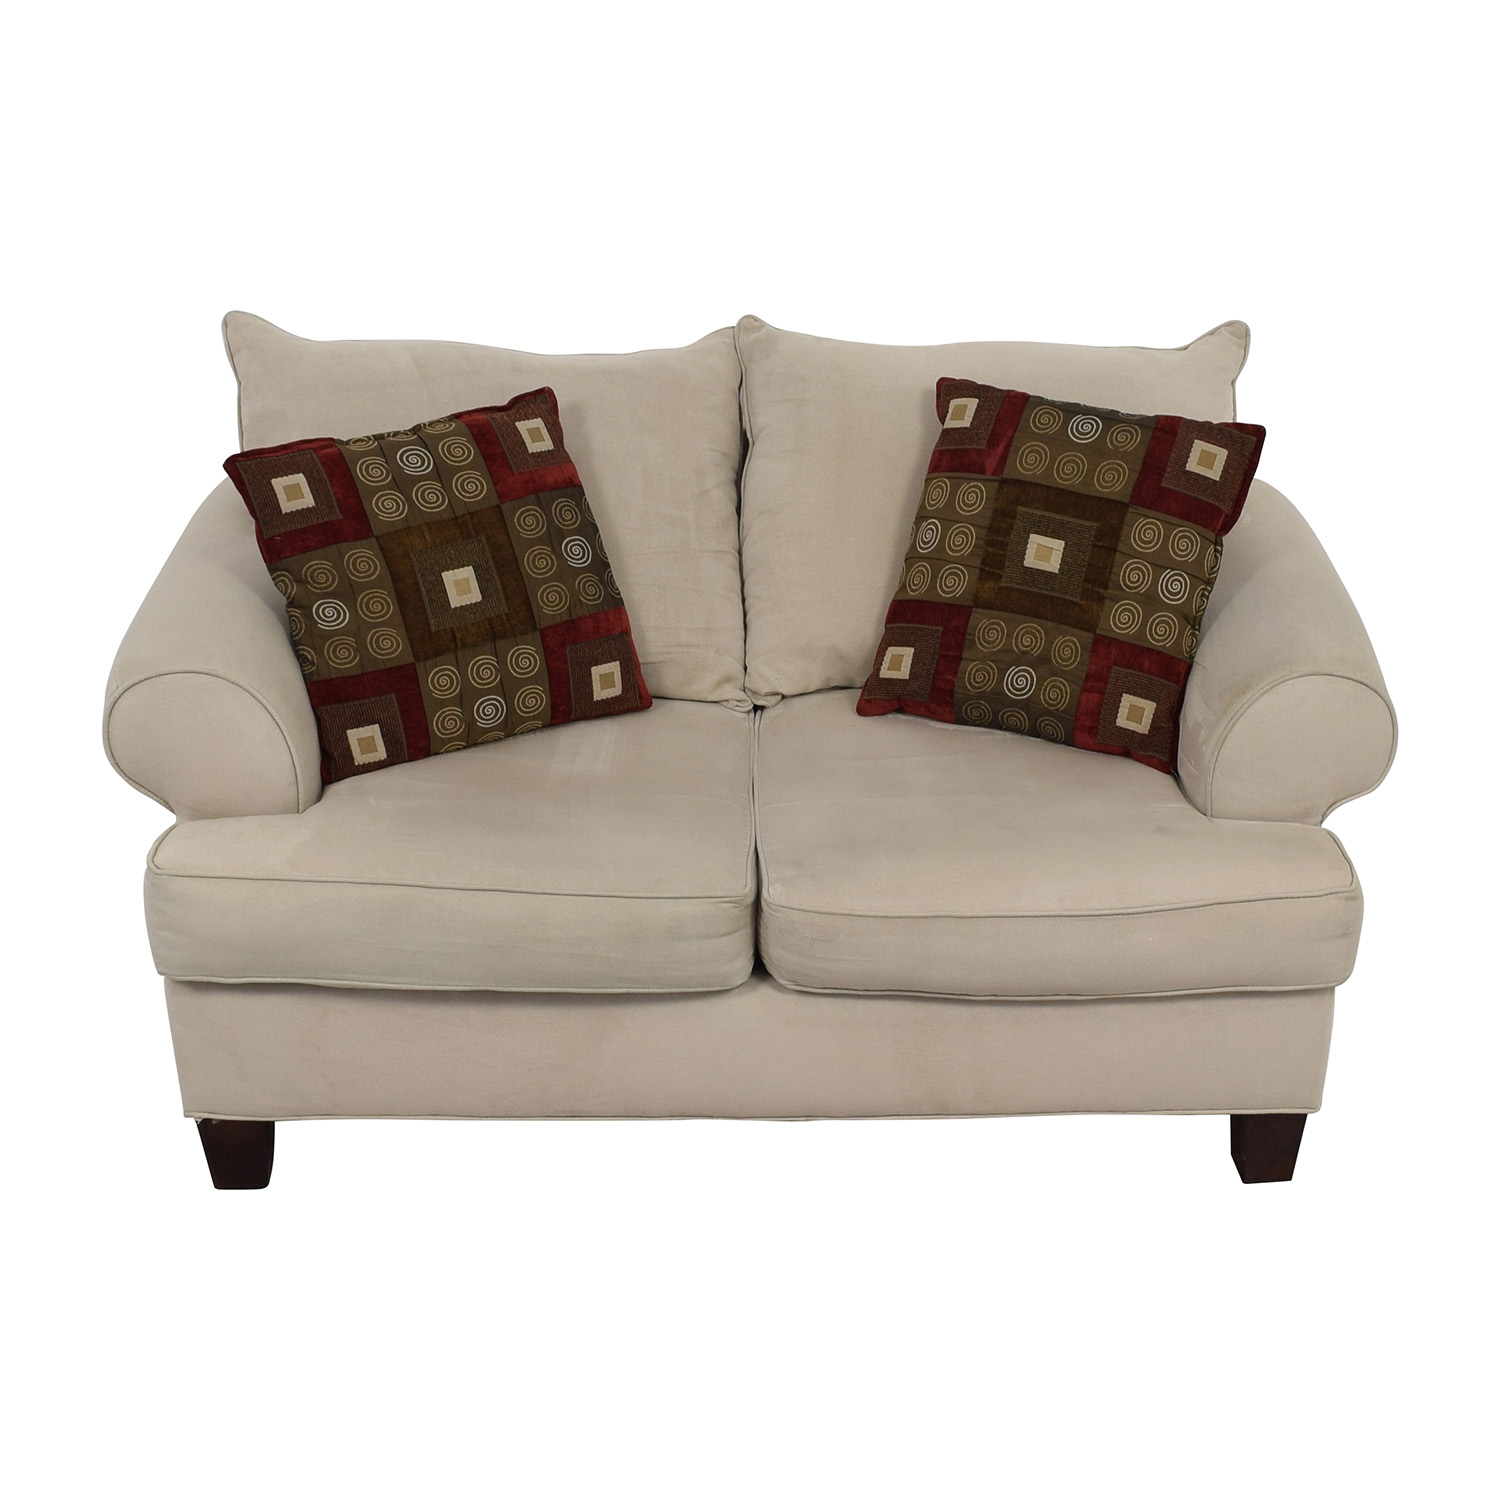 Bobs Discount Furniture Bobs Discount Furniture Cream Love Seat price